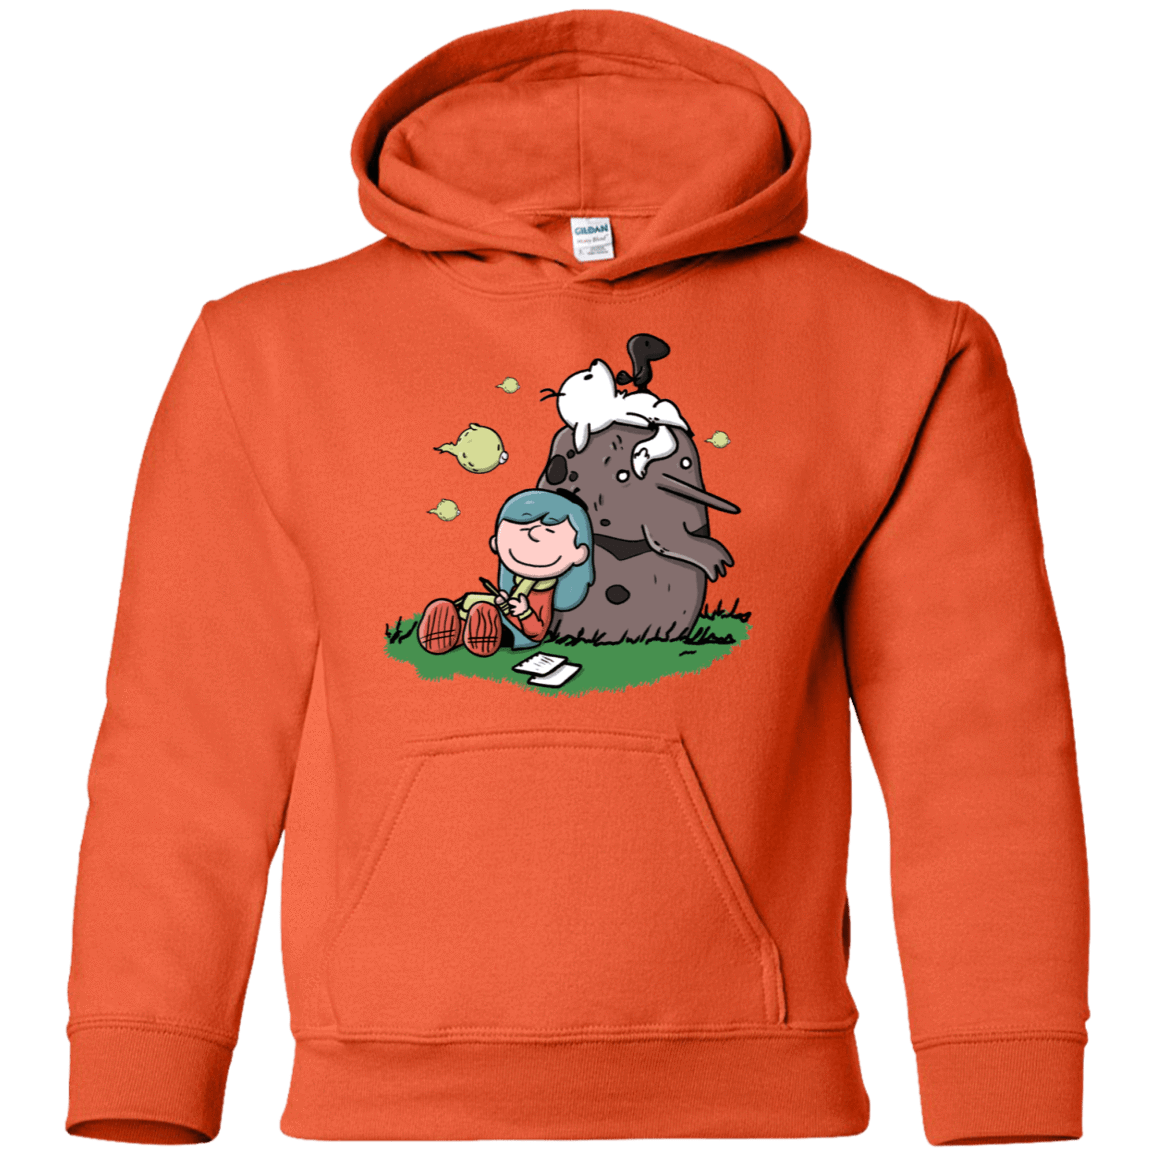 Sweatshirts Orange / YS Hilda Brown Youth Hoodie